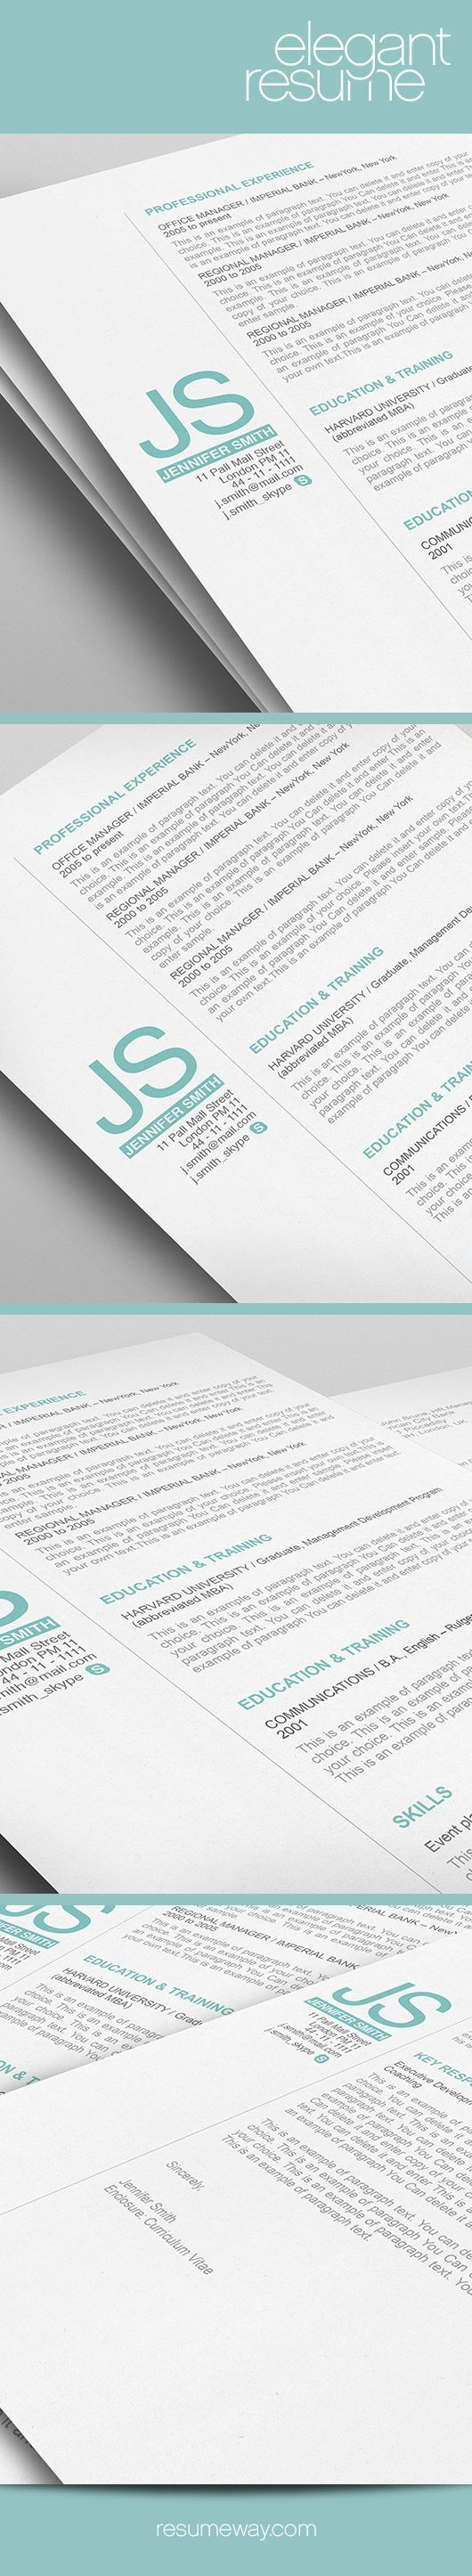 letter template resume cover letters templates proposal apple pages numbers general information - Best Resume Templates For Word